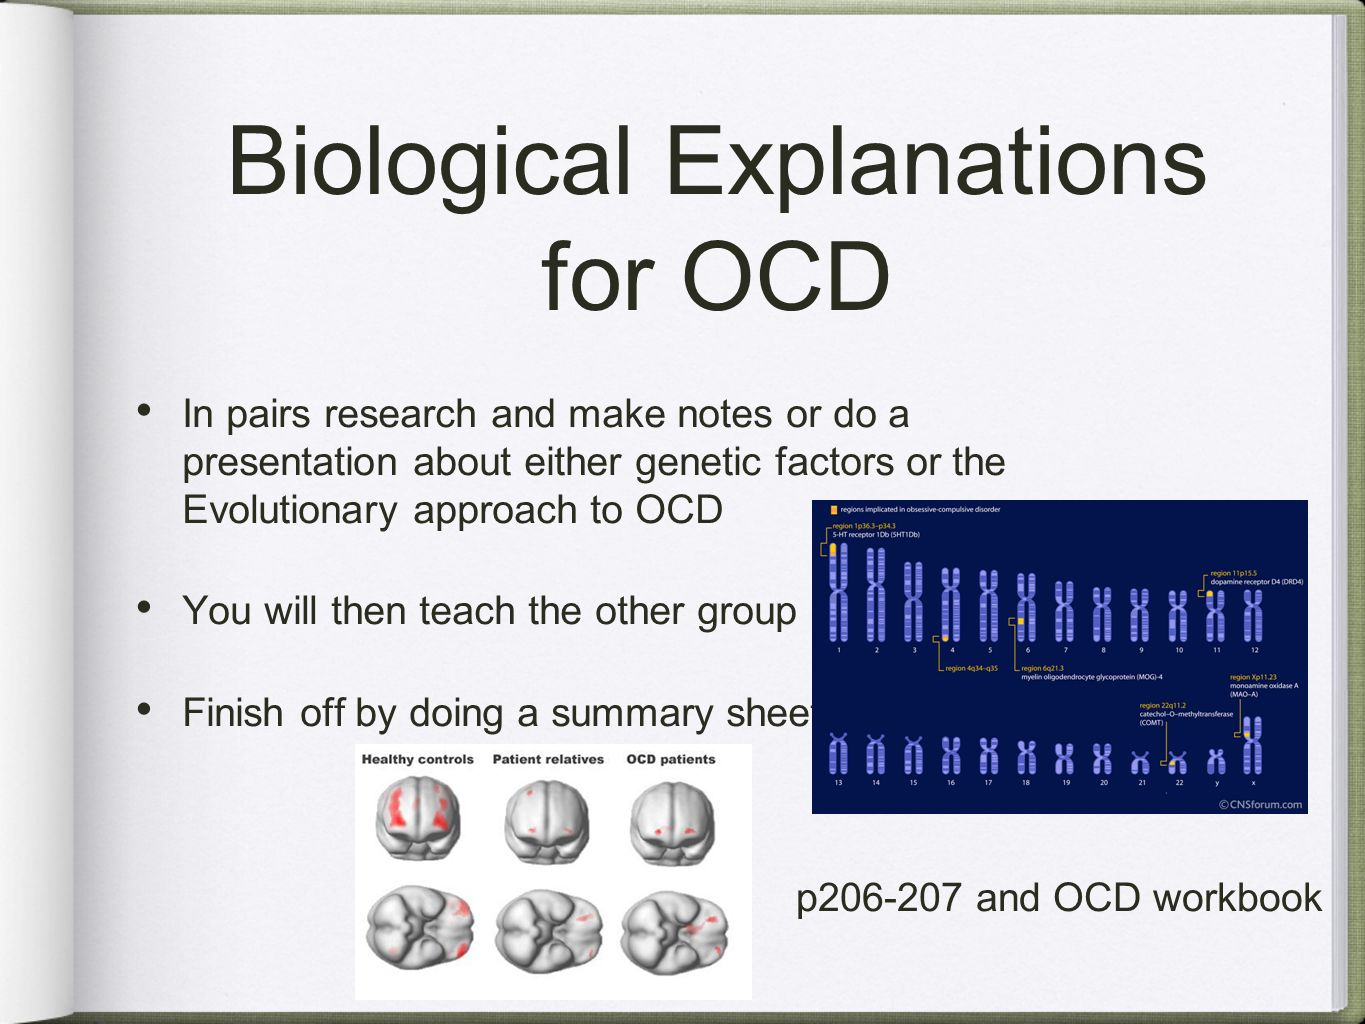 Biological Explanations And Treatments For Ocd